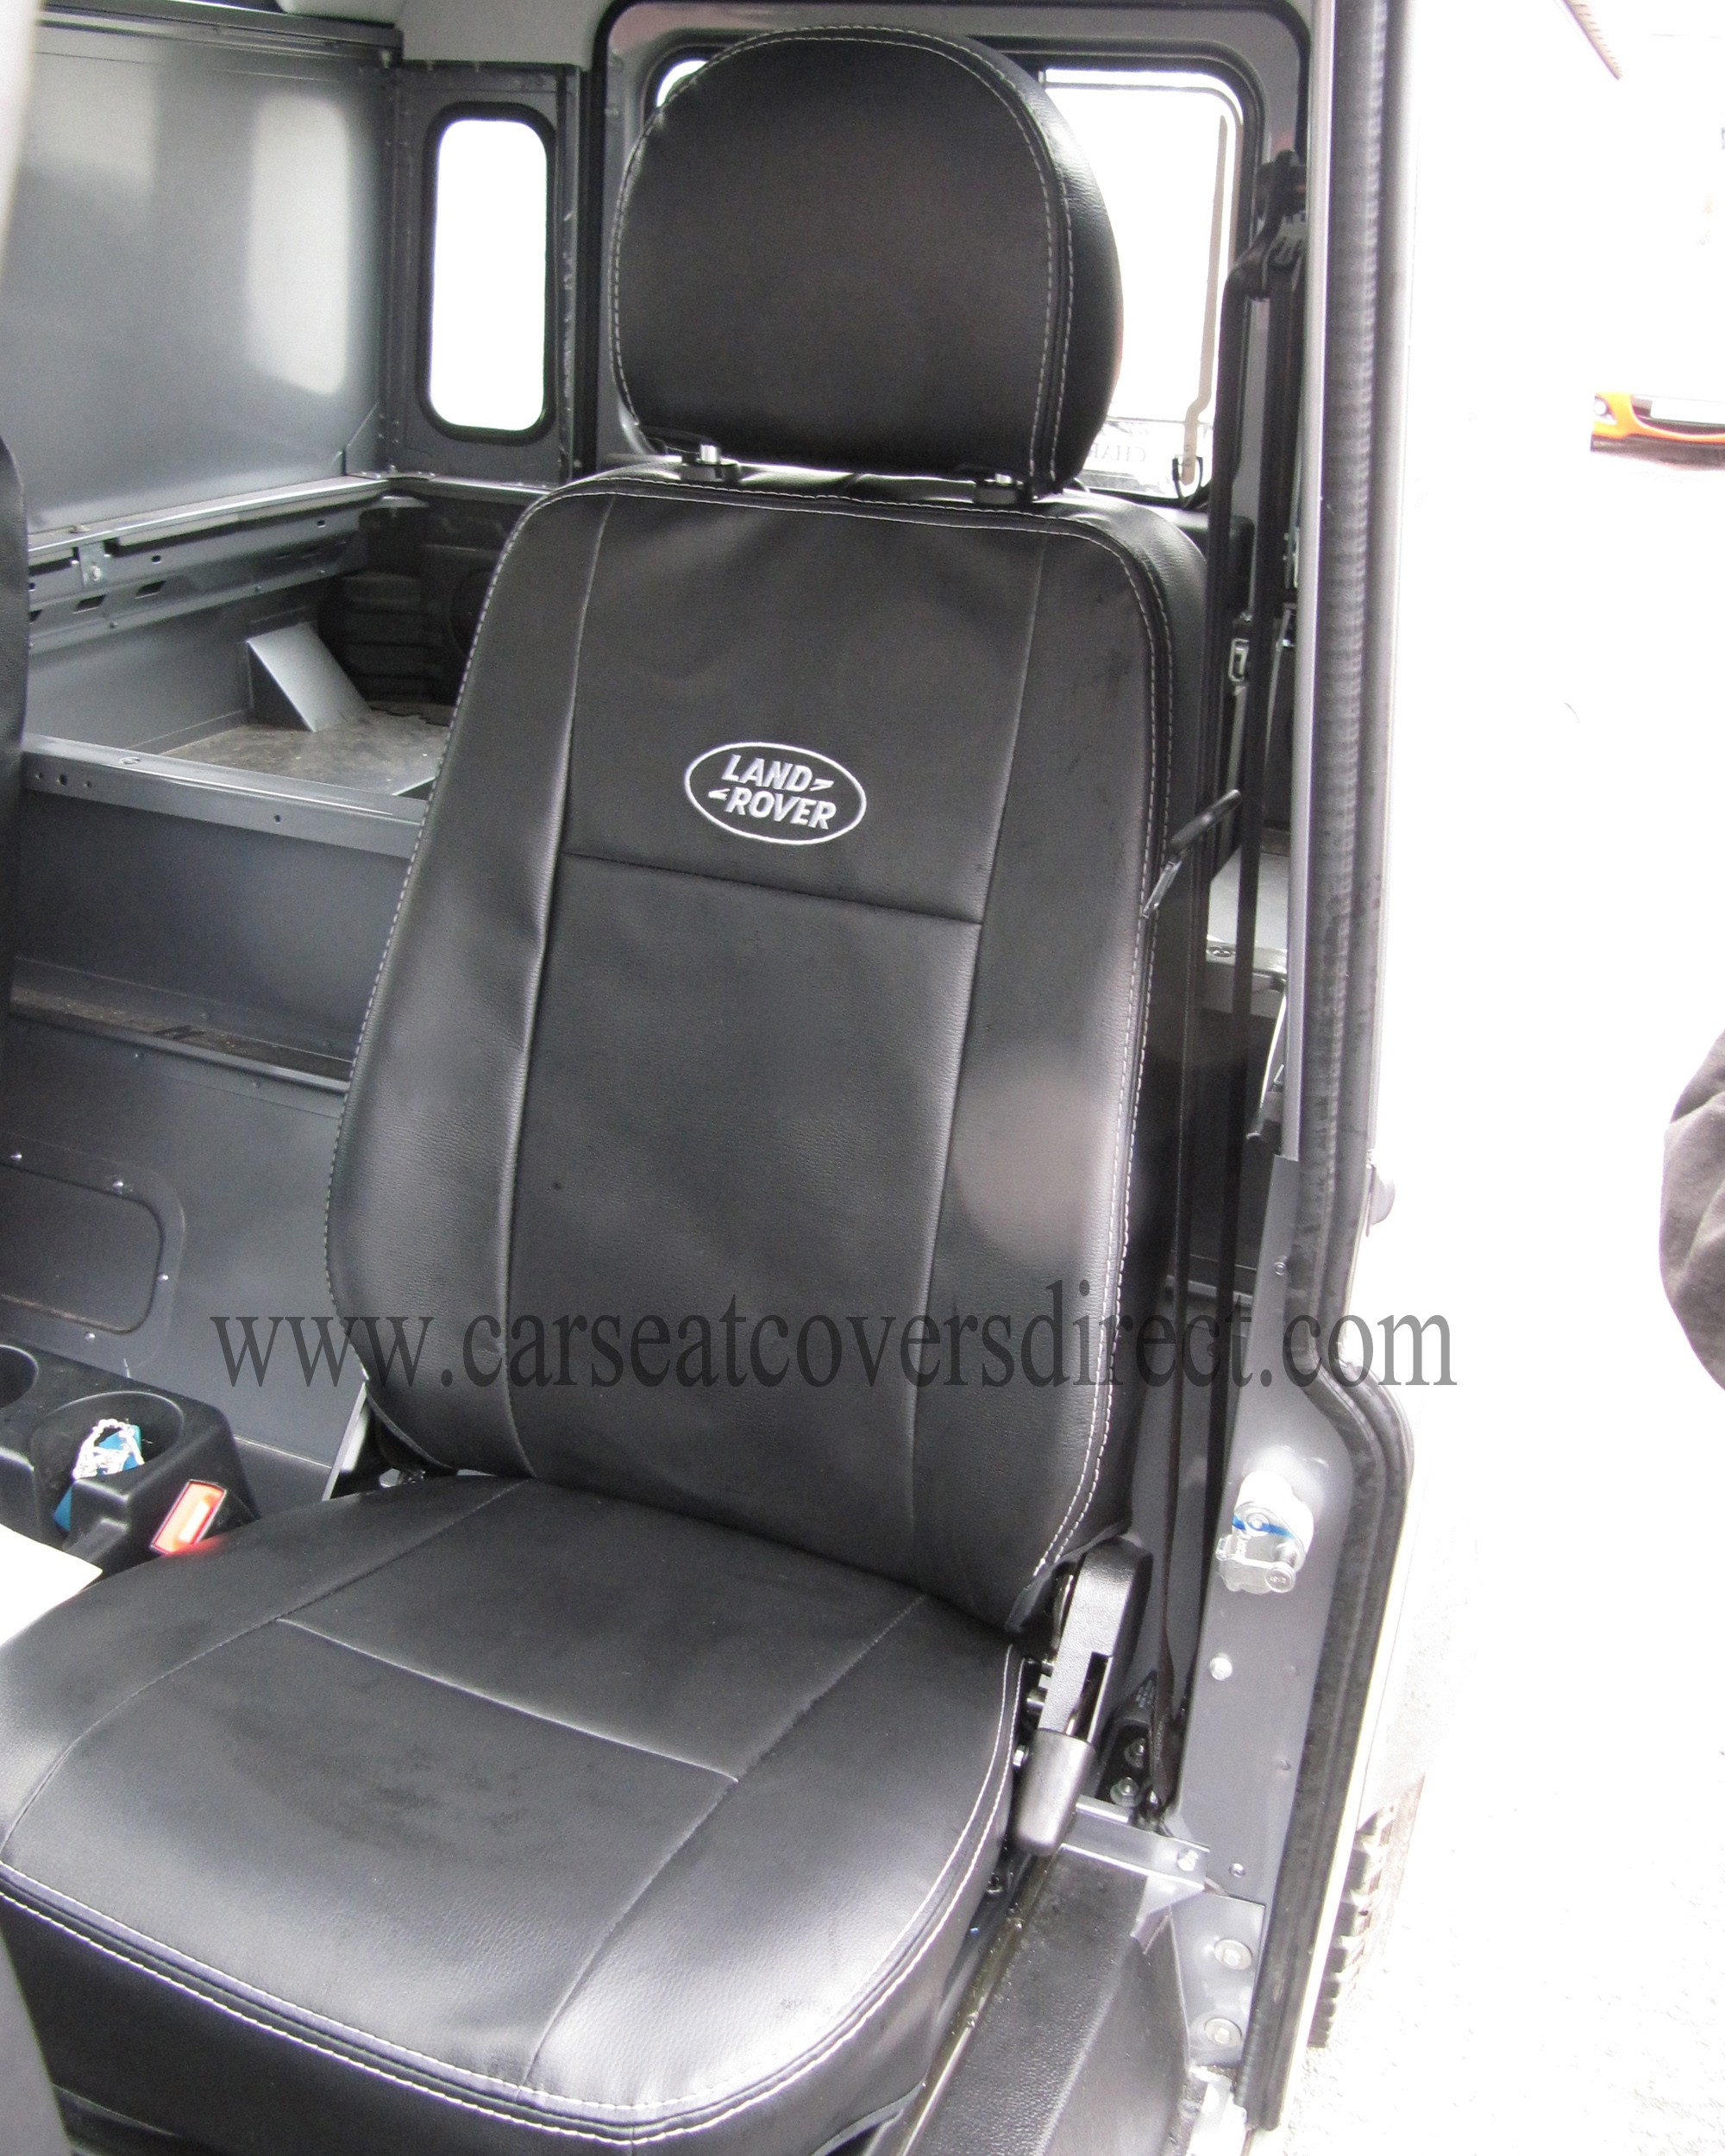 LANDROVER DEFENDER Black Leatherette Seat Covers